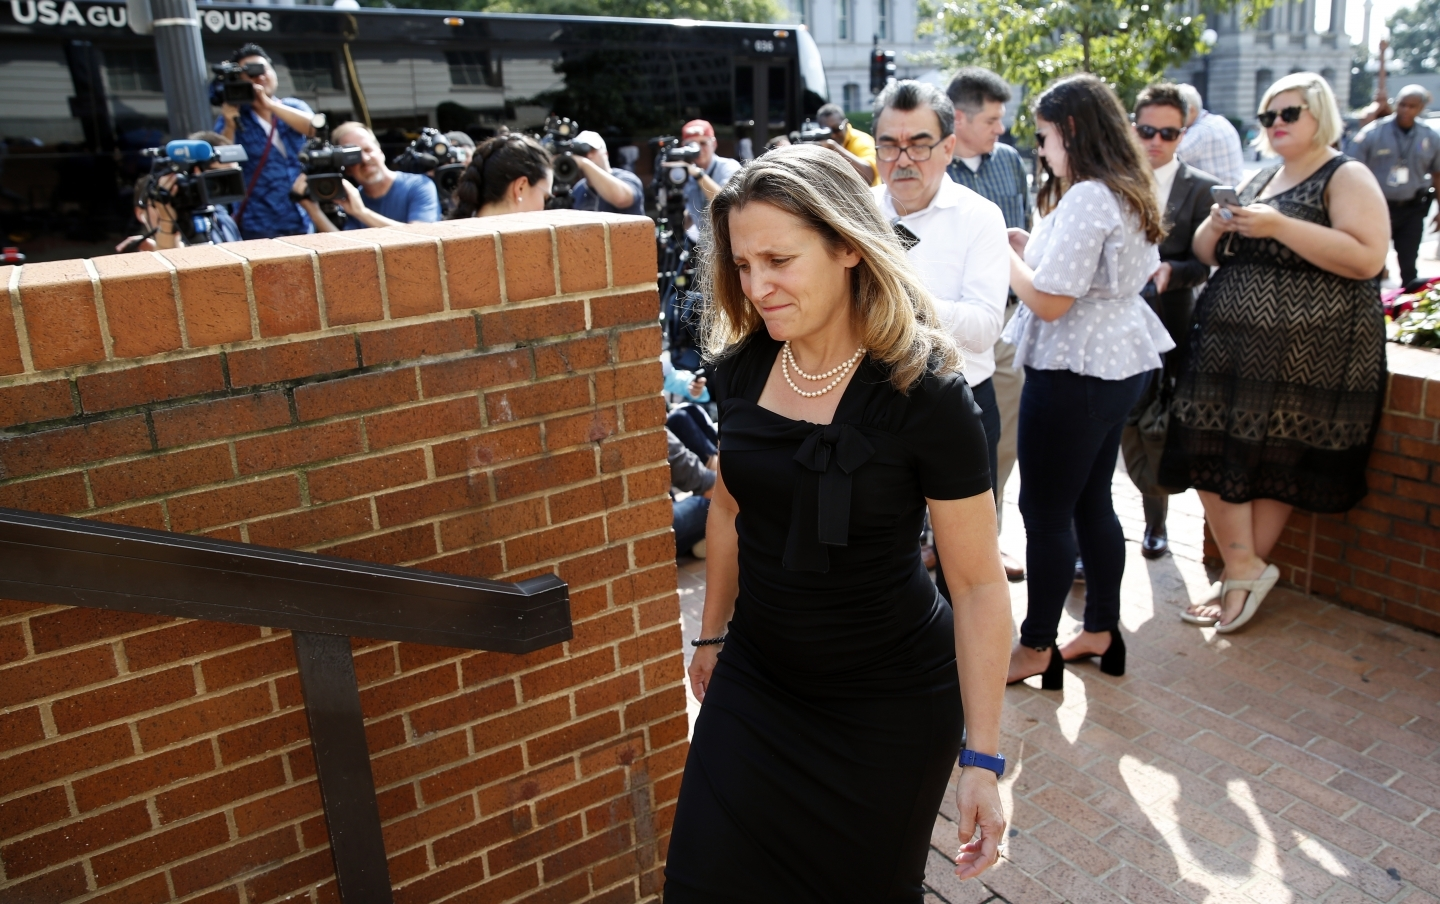 Canadian Foreign Affairs Minister Chrystia Freeland arrives at the Office of the United States Trade Representative on September 19, 2018, in Washington. (AP Photo/Alex Brandon)